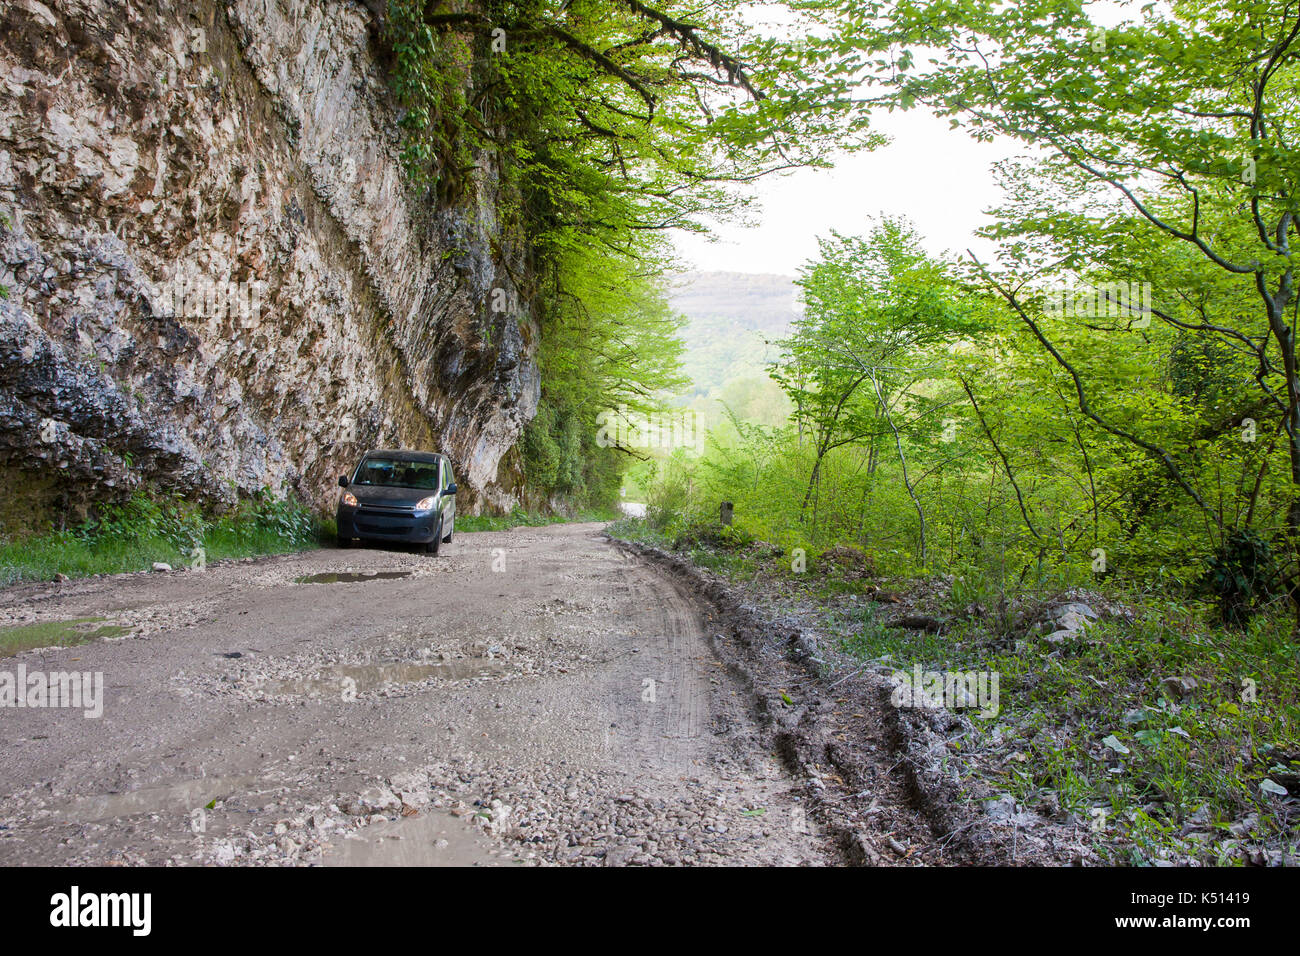 the car in the mountains of Abkhazia - Stock Image